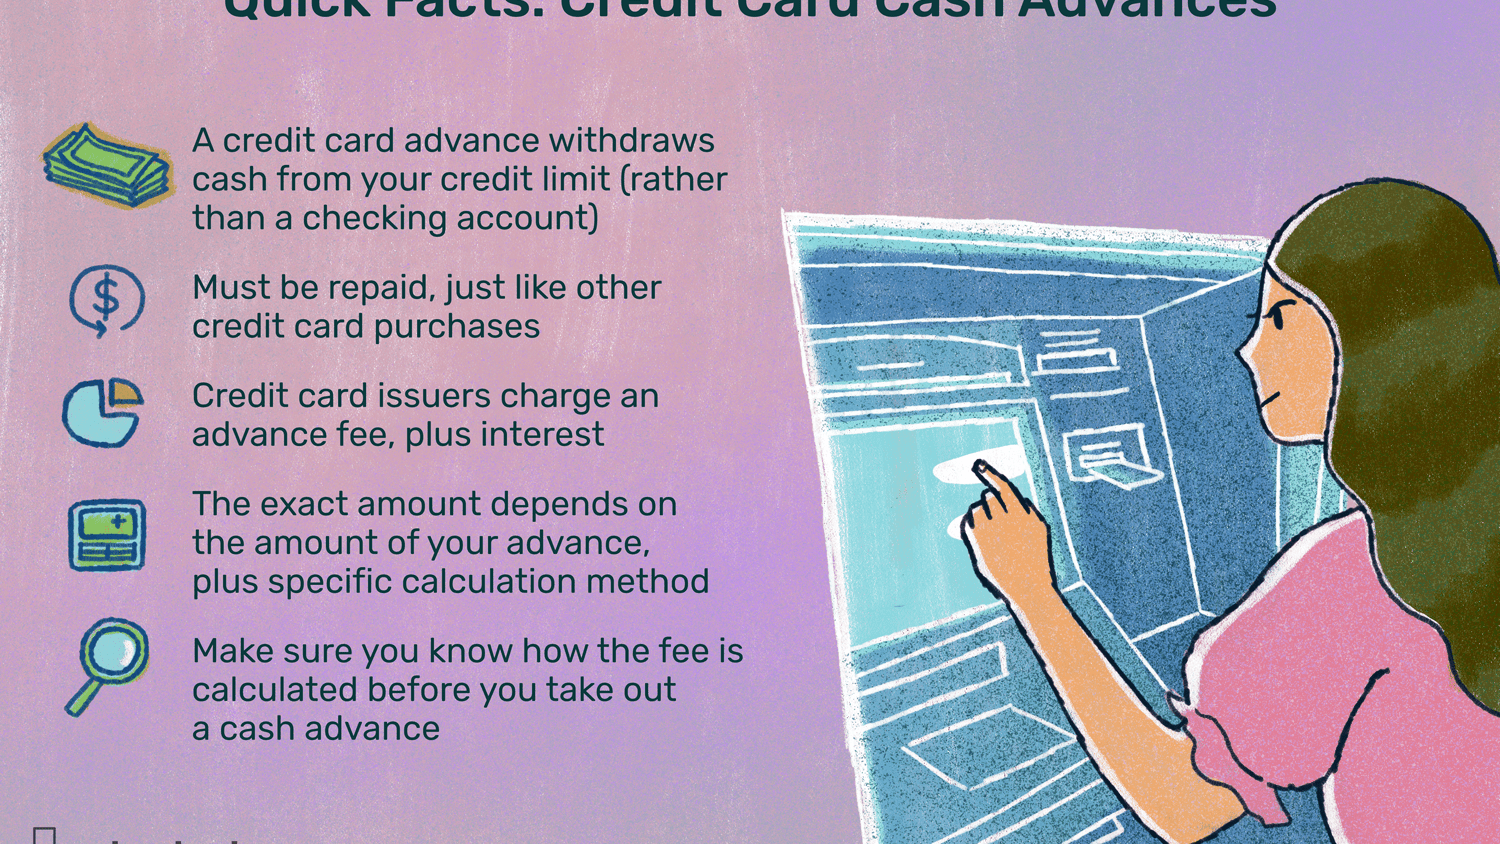 What Is a Credit Card Cash Advance Fee?